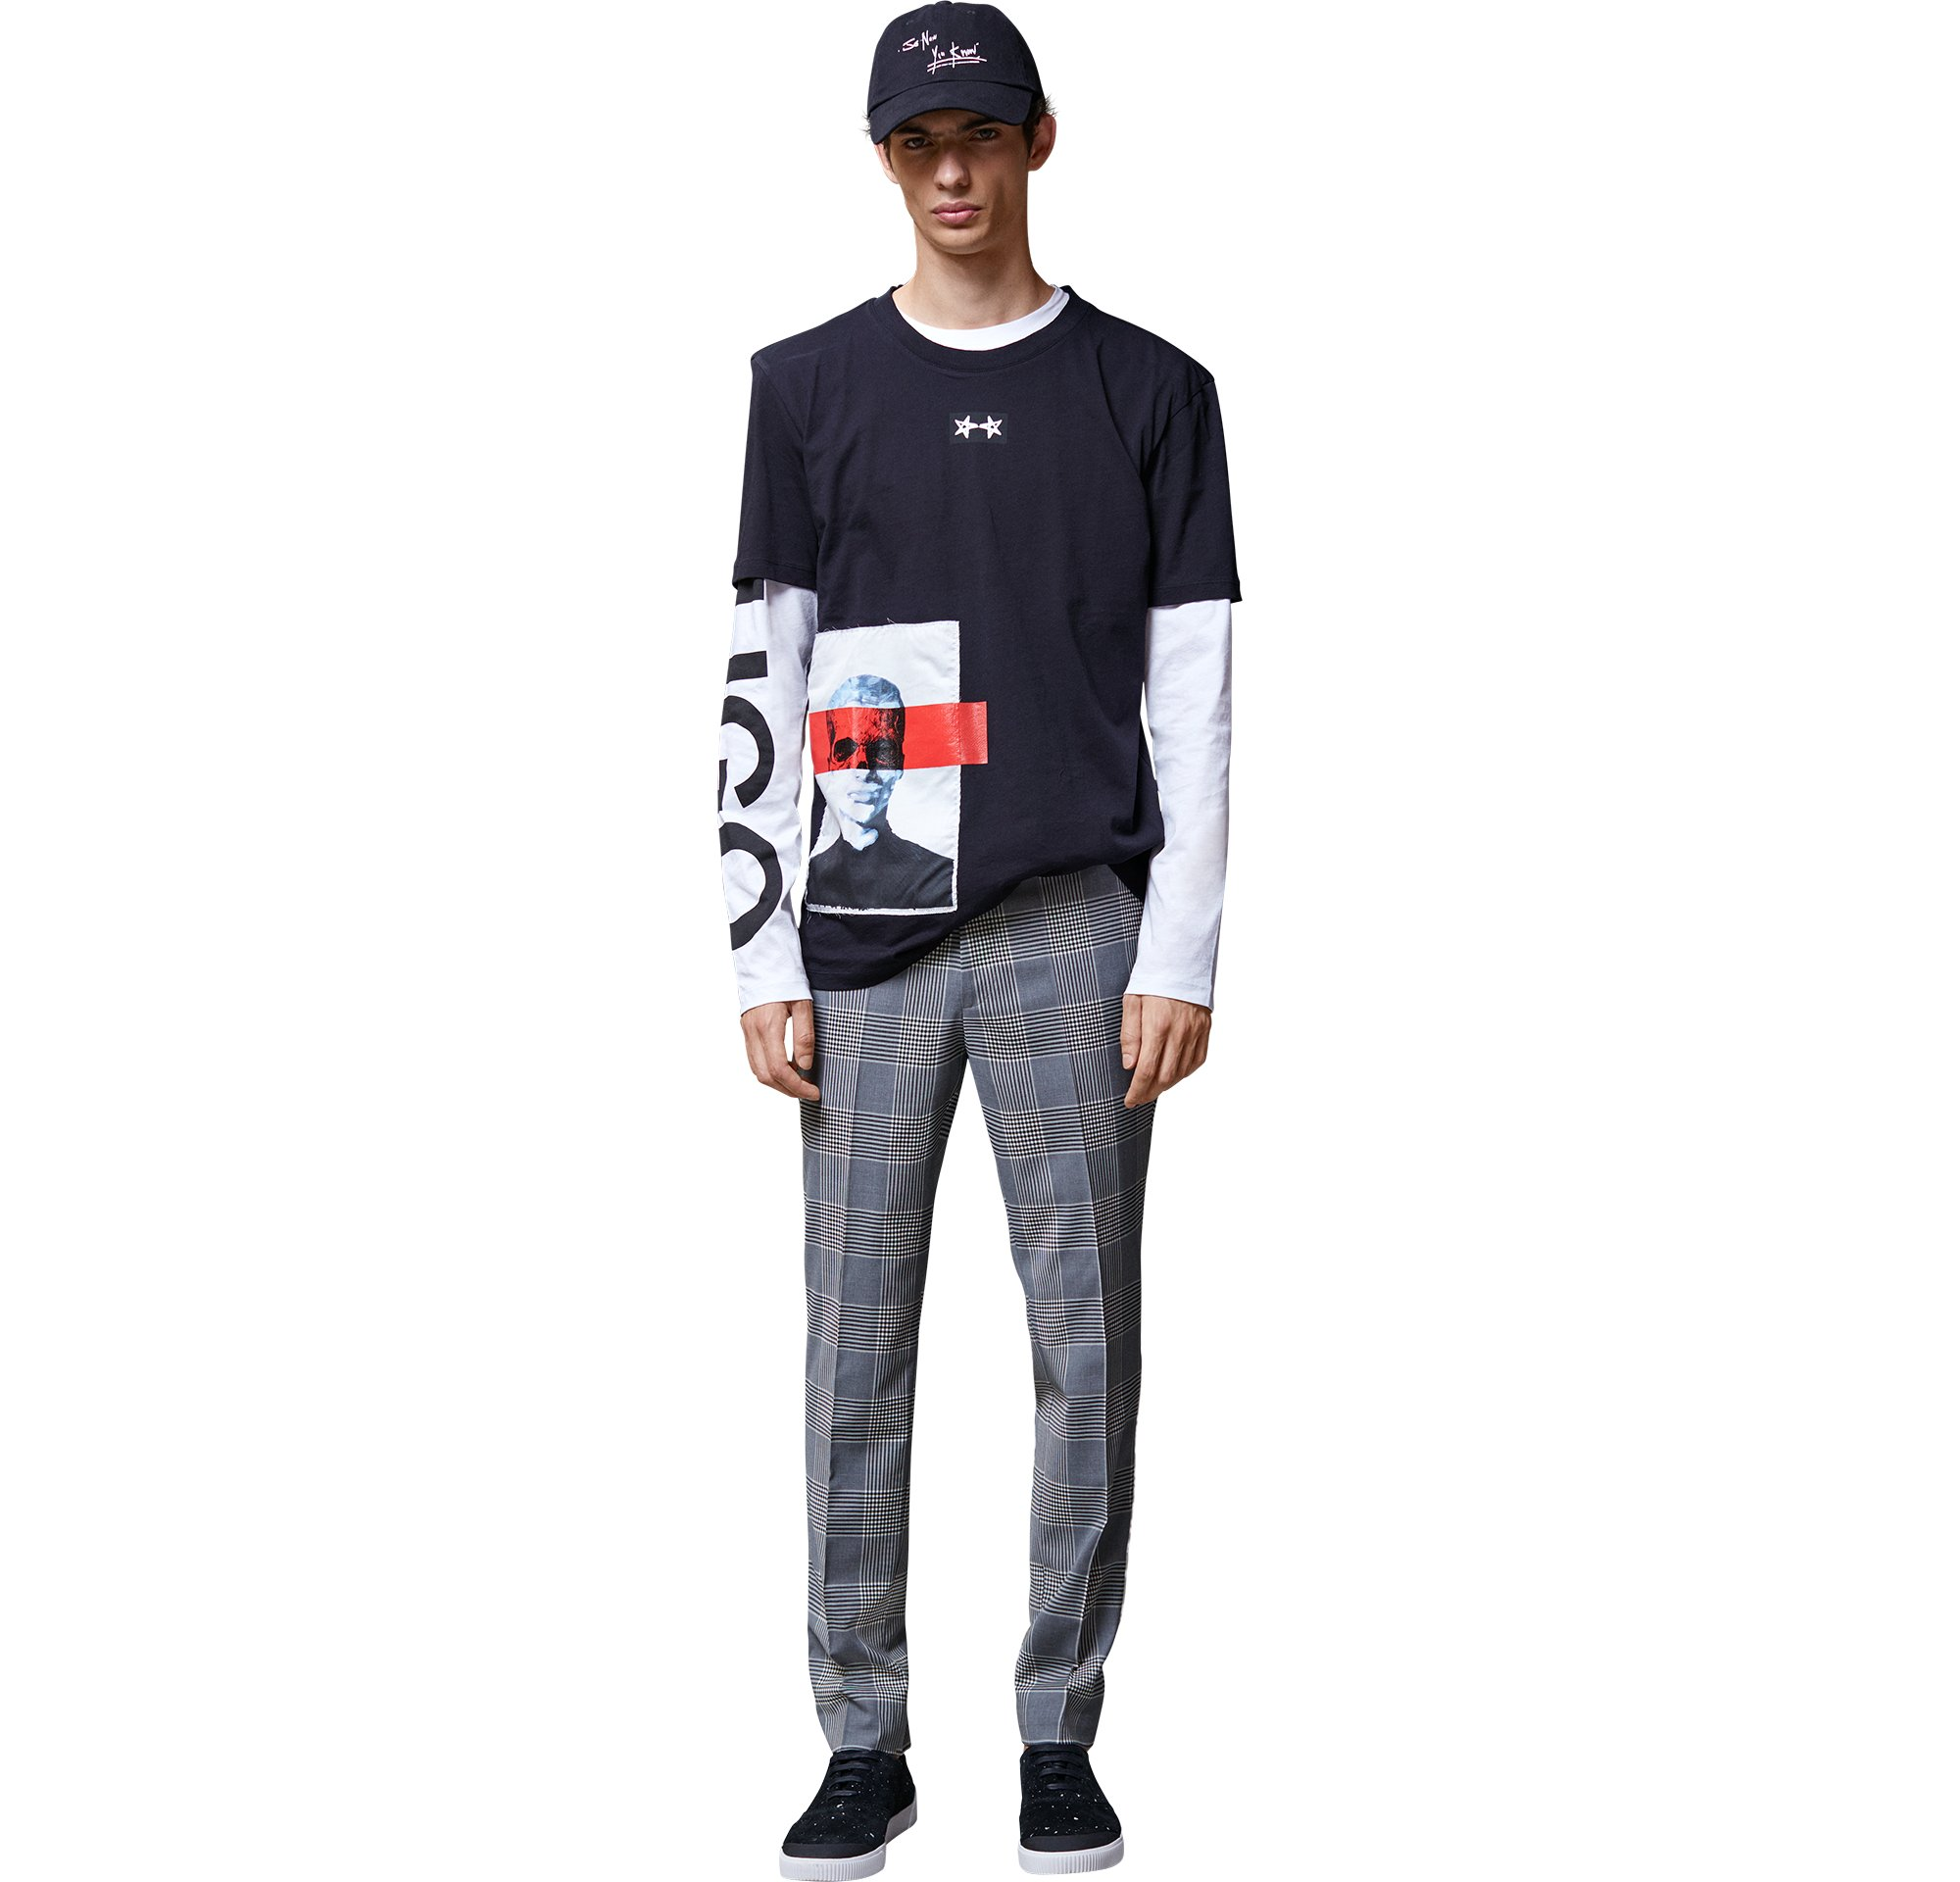 HUGO_Men_SR18_Look_15,